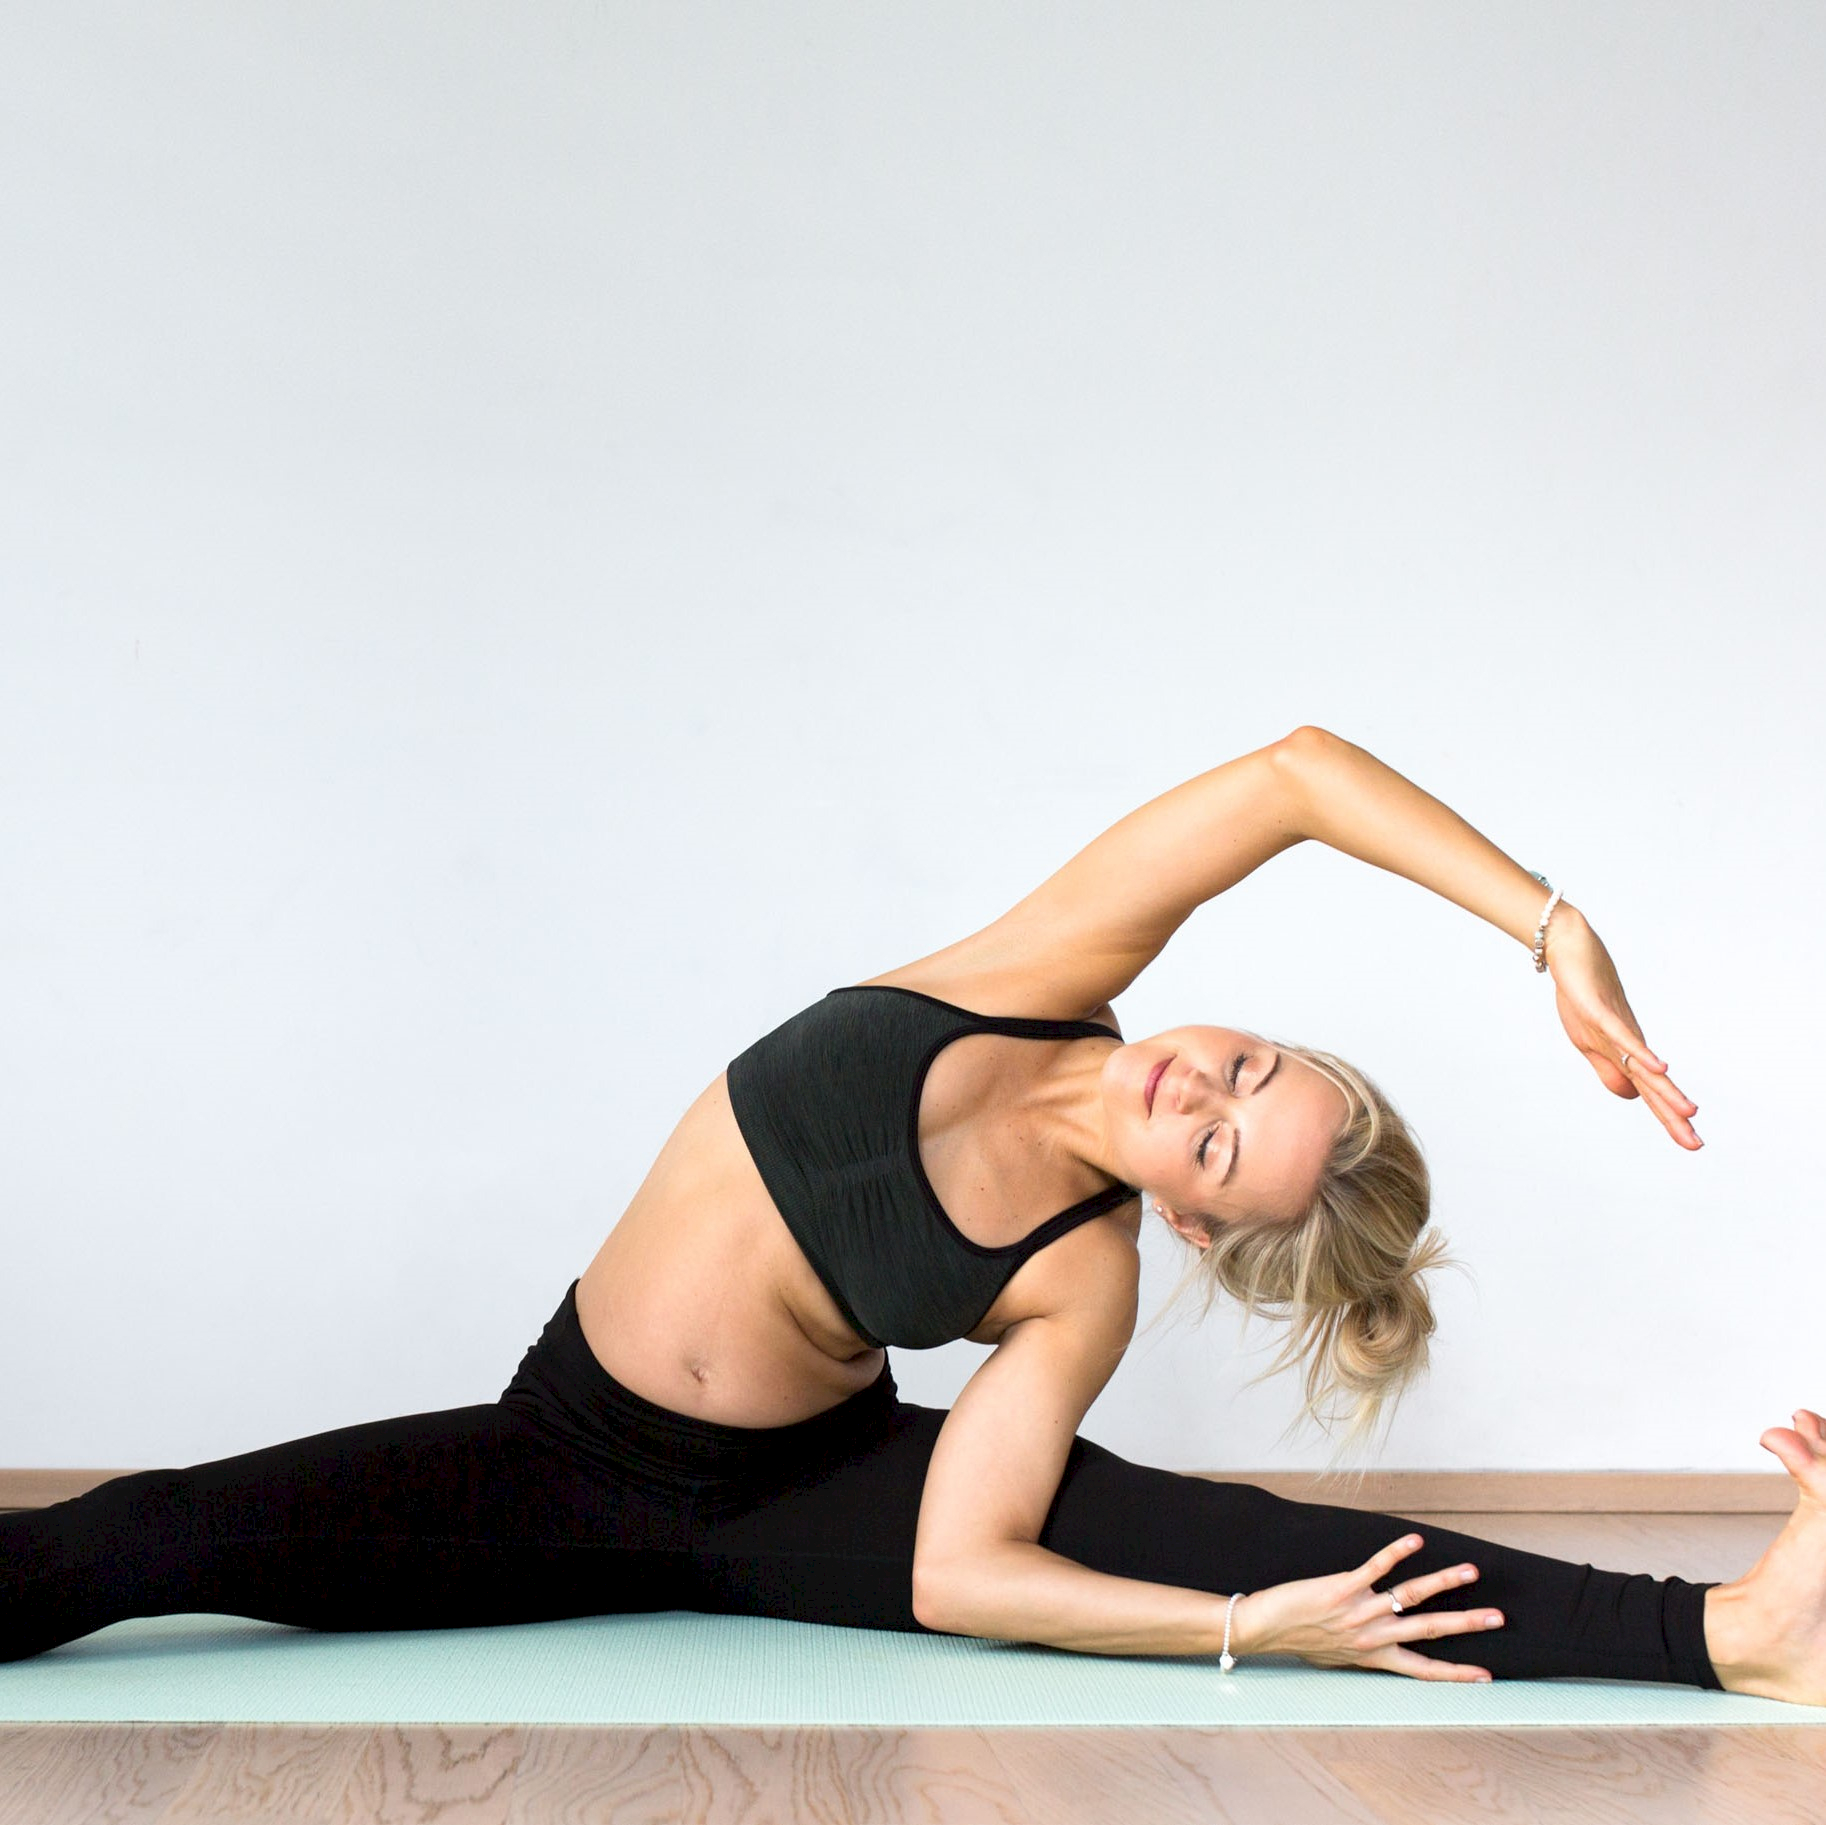 lisa_yoga_high-6_quadrat.1611036657.jpg